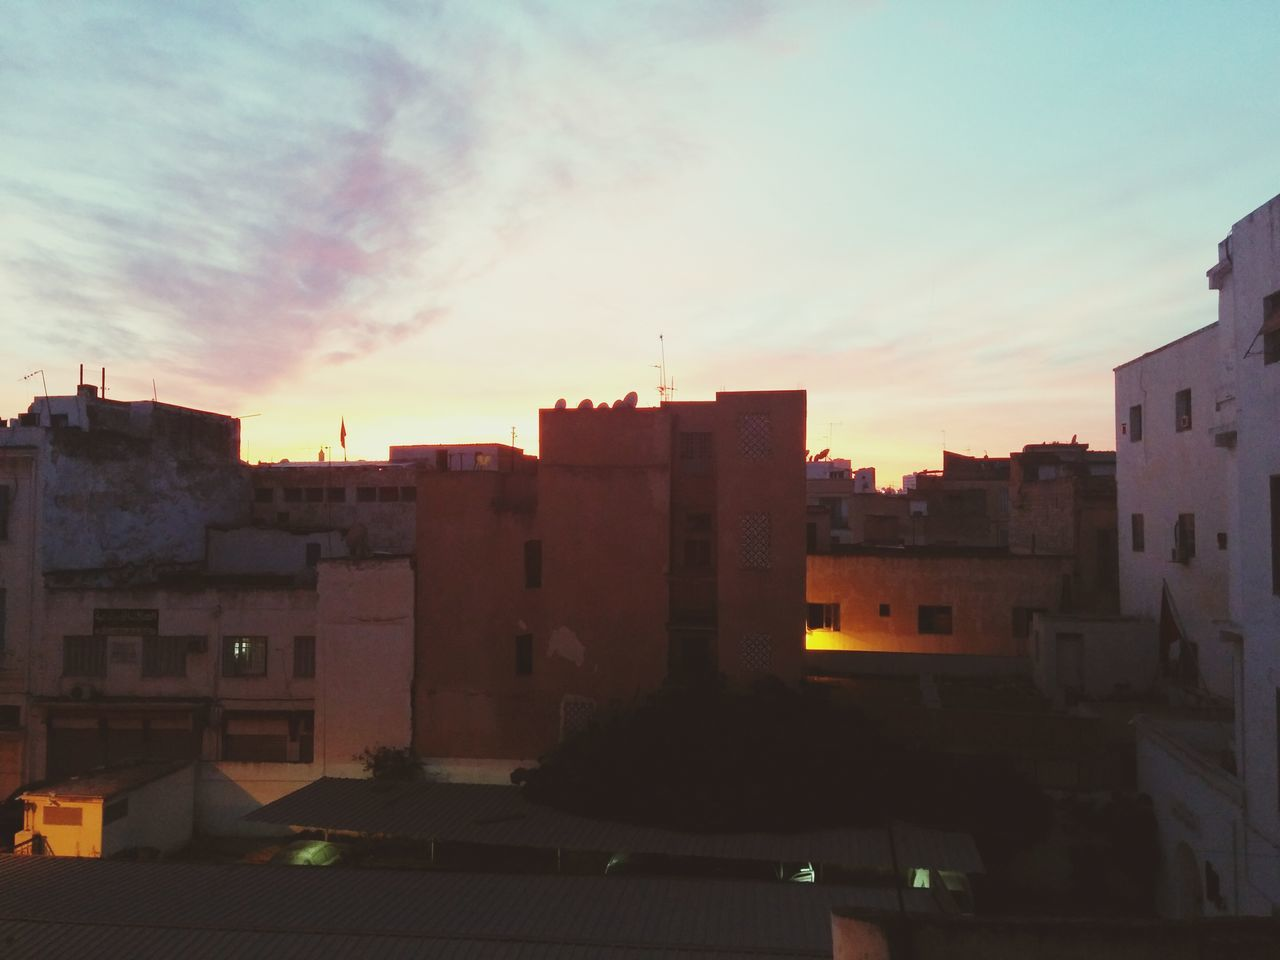 architecture, building exterior, sunset, built structure, sky, no people, city, cityscape, outdoors, day